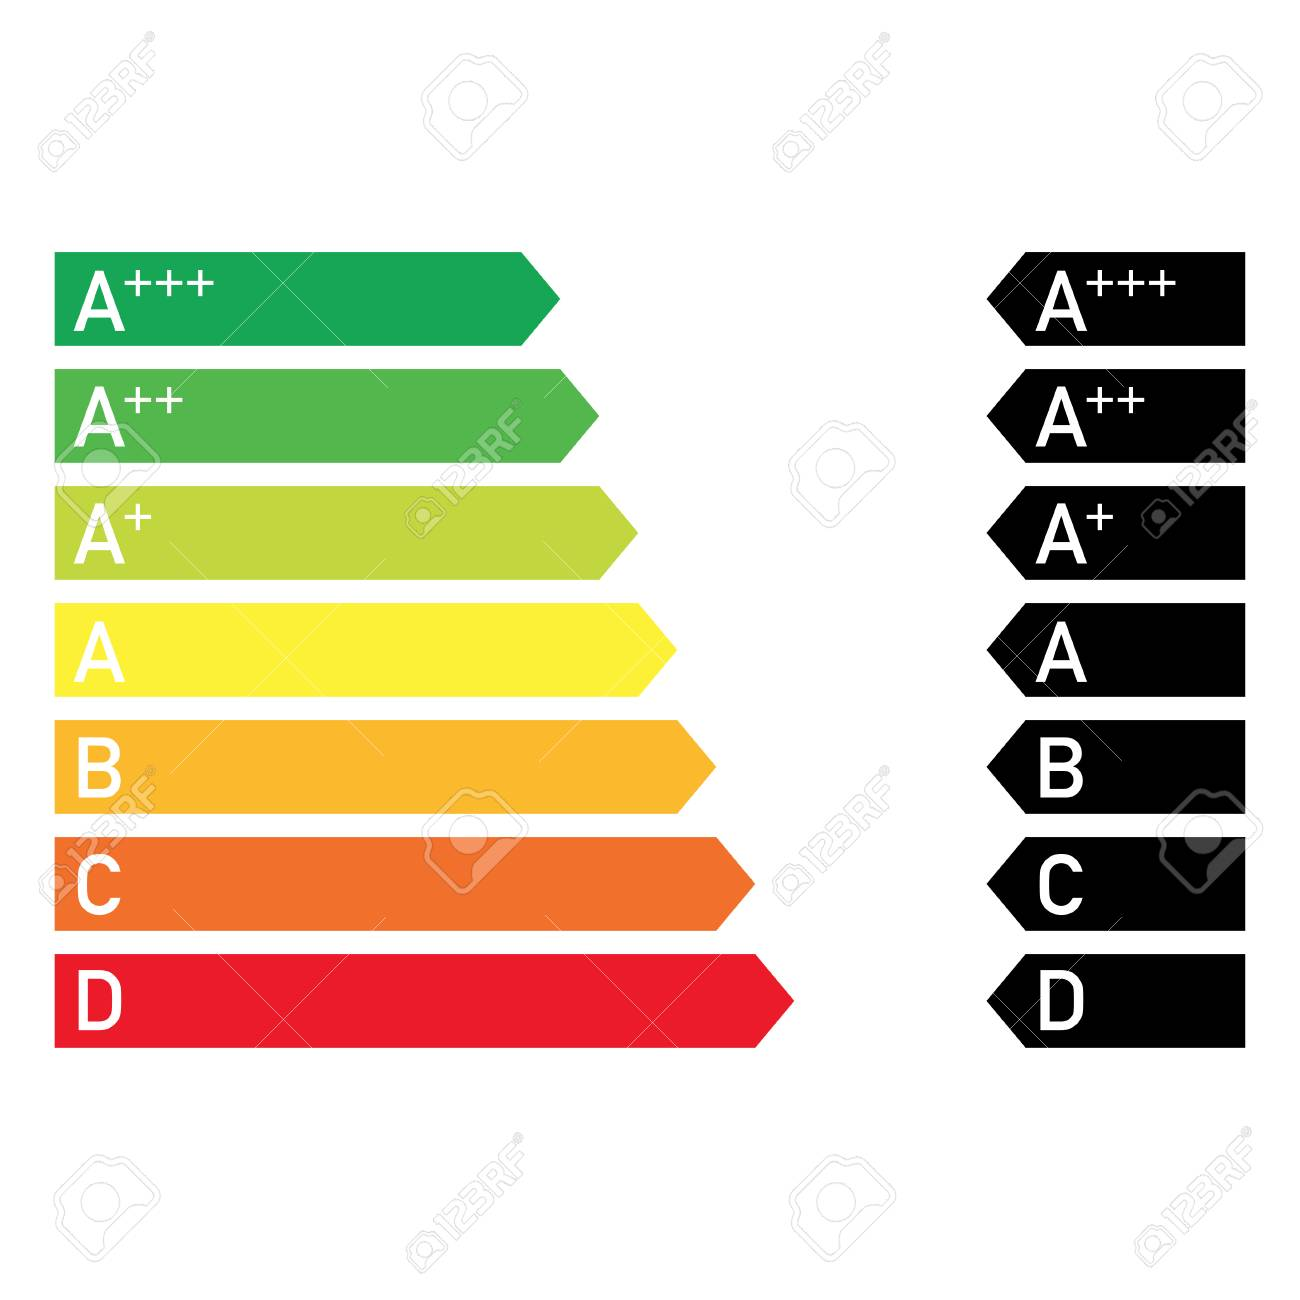 energy saving efficiency diagram colourful in common style - 121912892